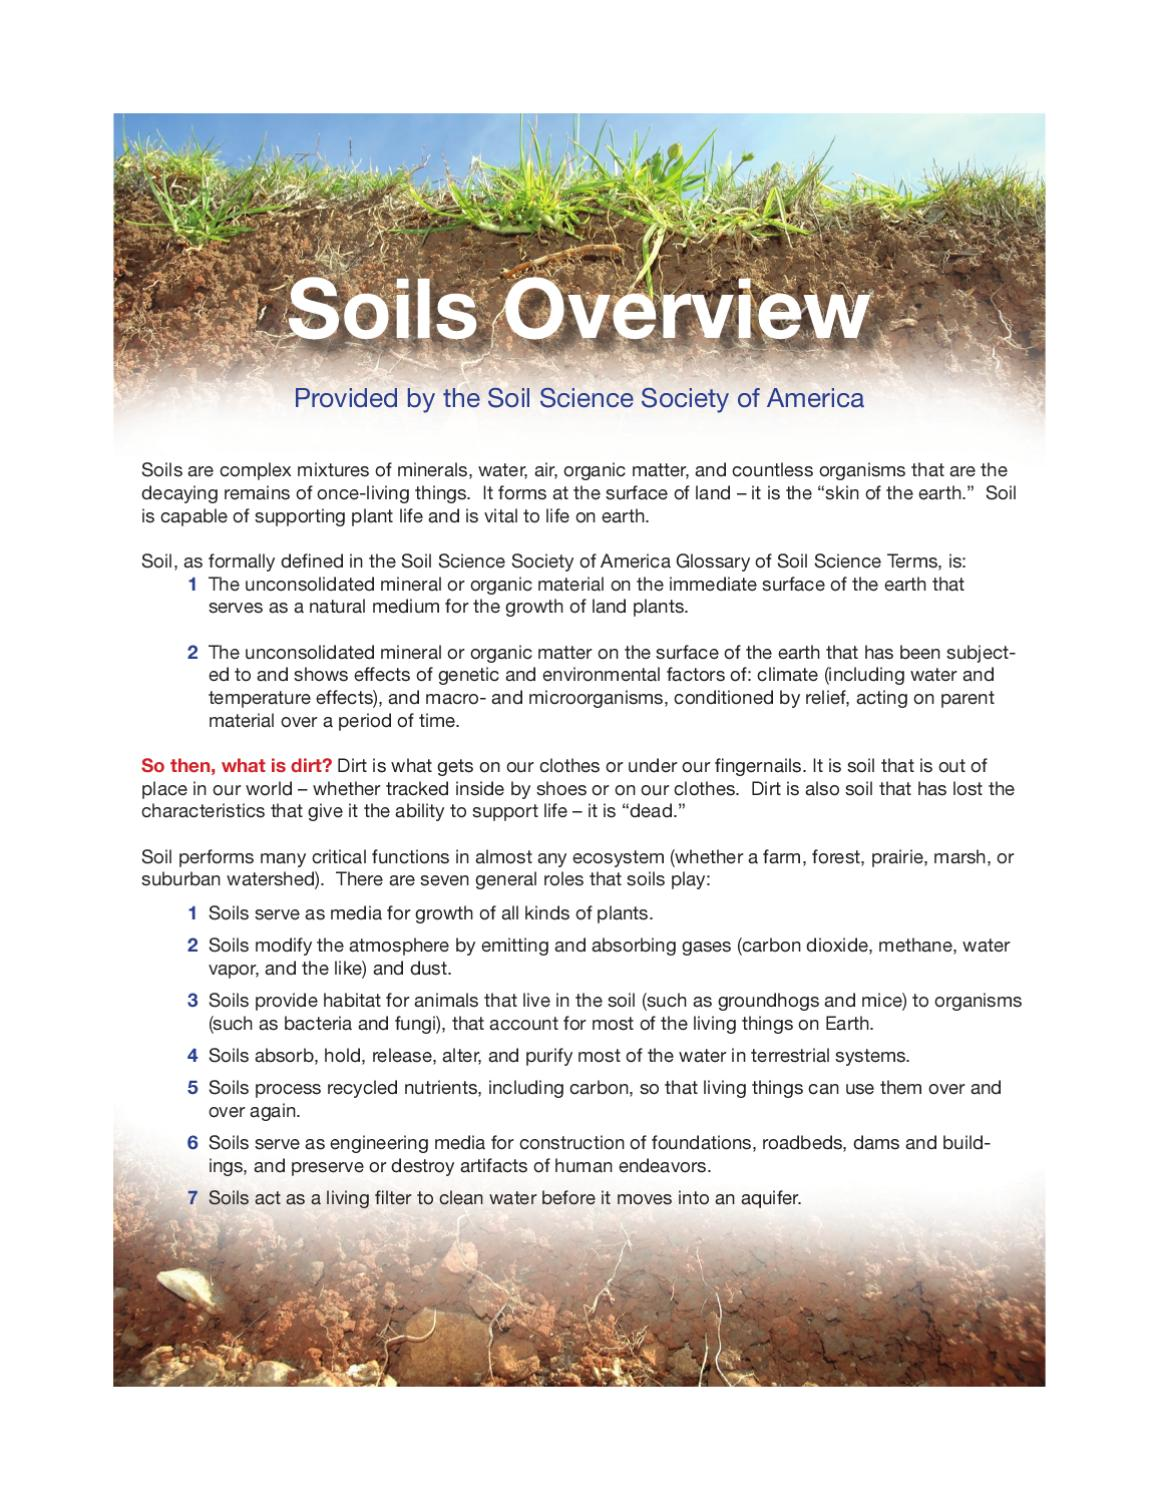 soils overview - by the soil science society of america by u.s. rare